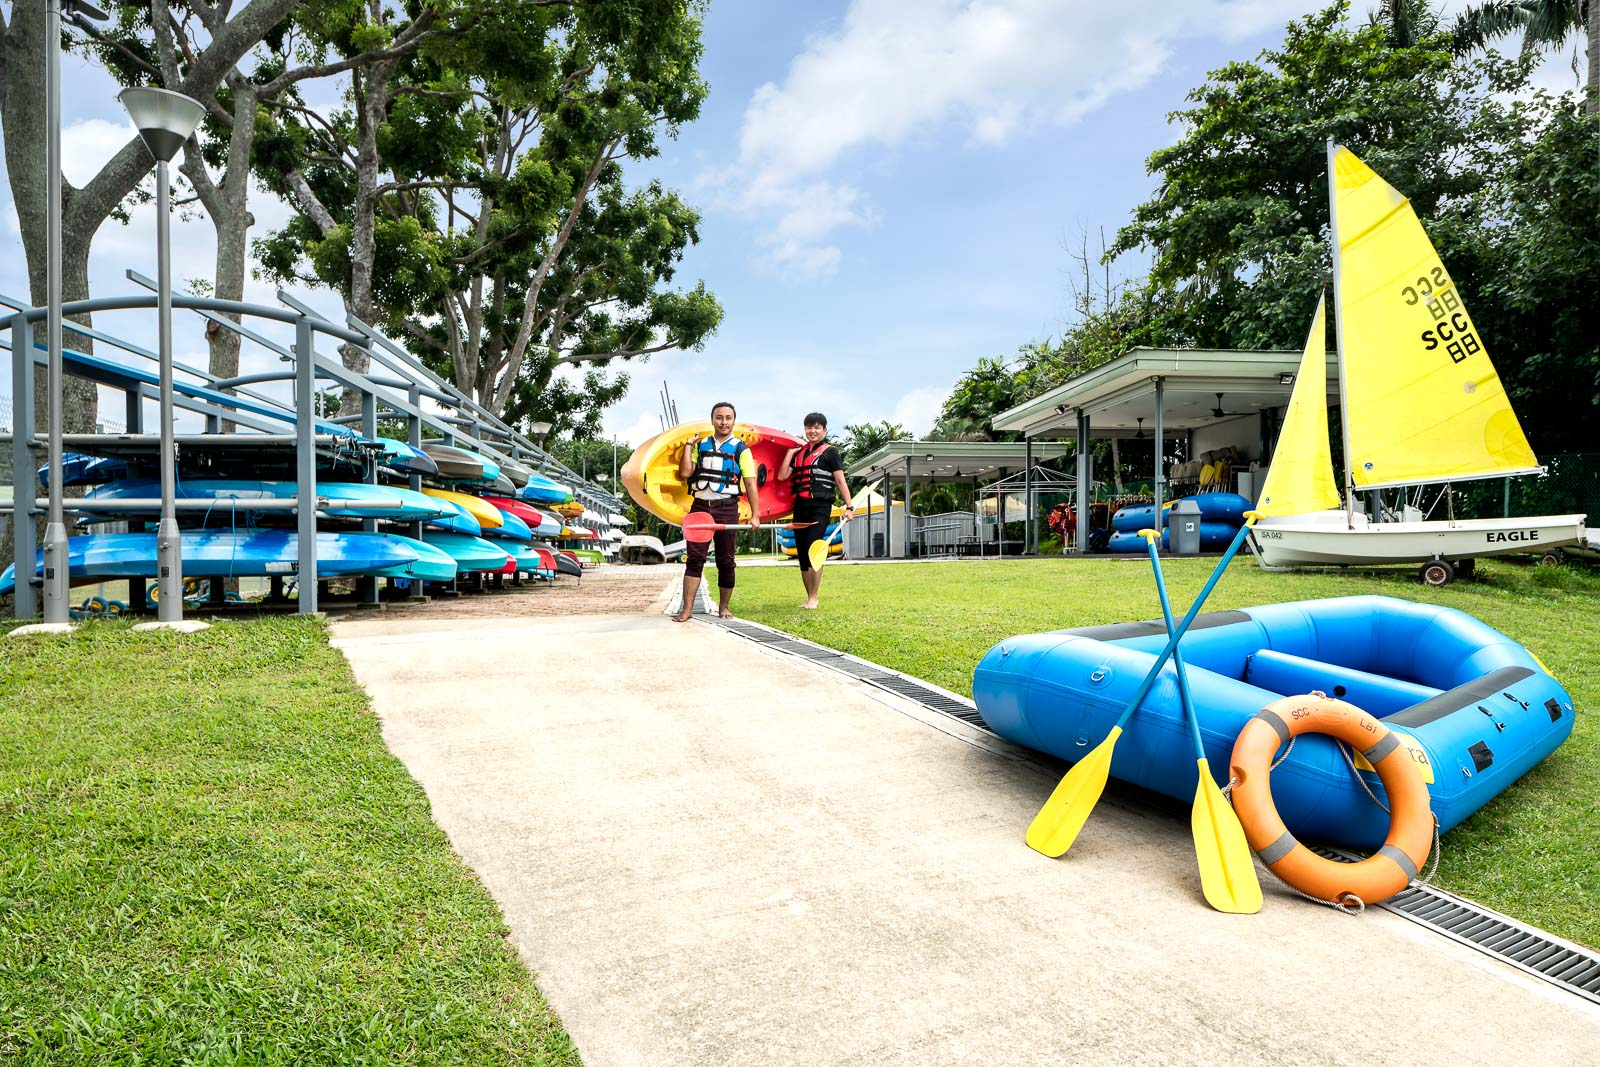 Interior photography of the seletar country club in singapore showing various water sports activities and two men carrying a boat to the water